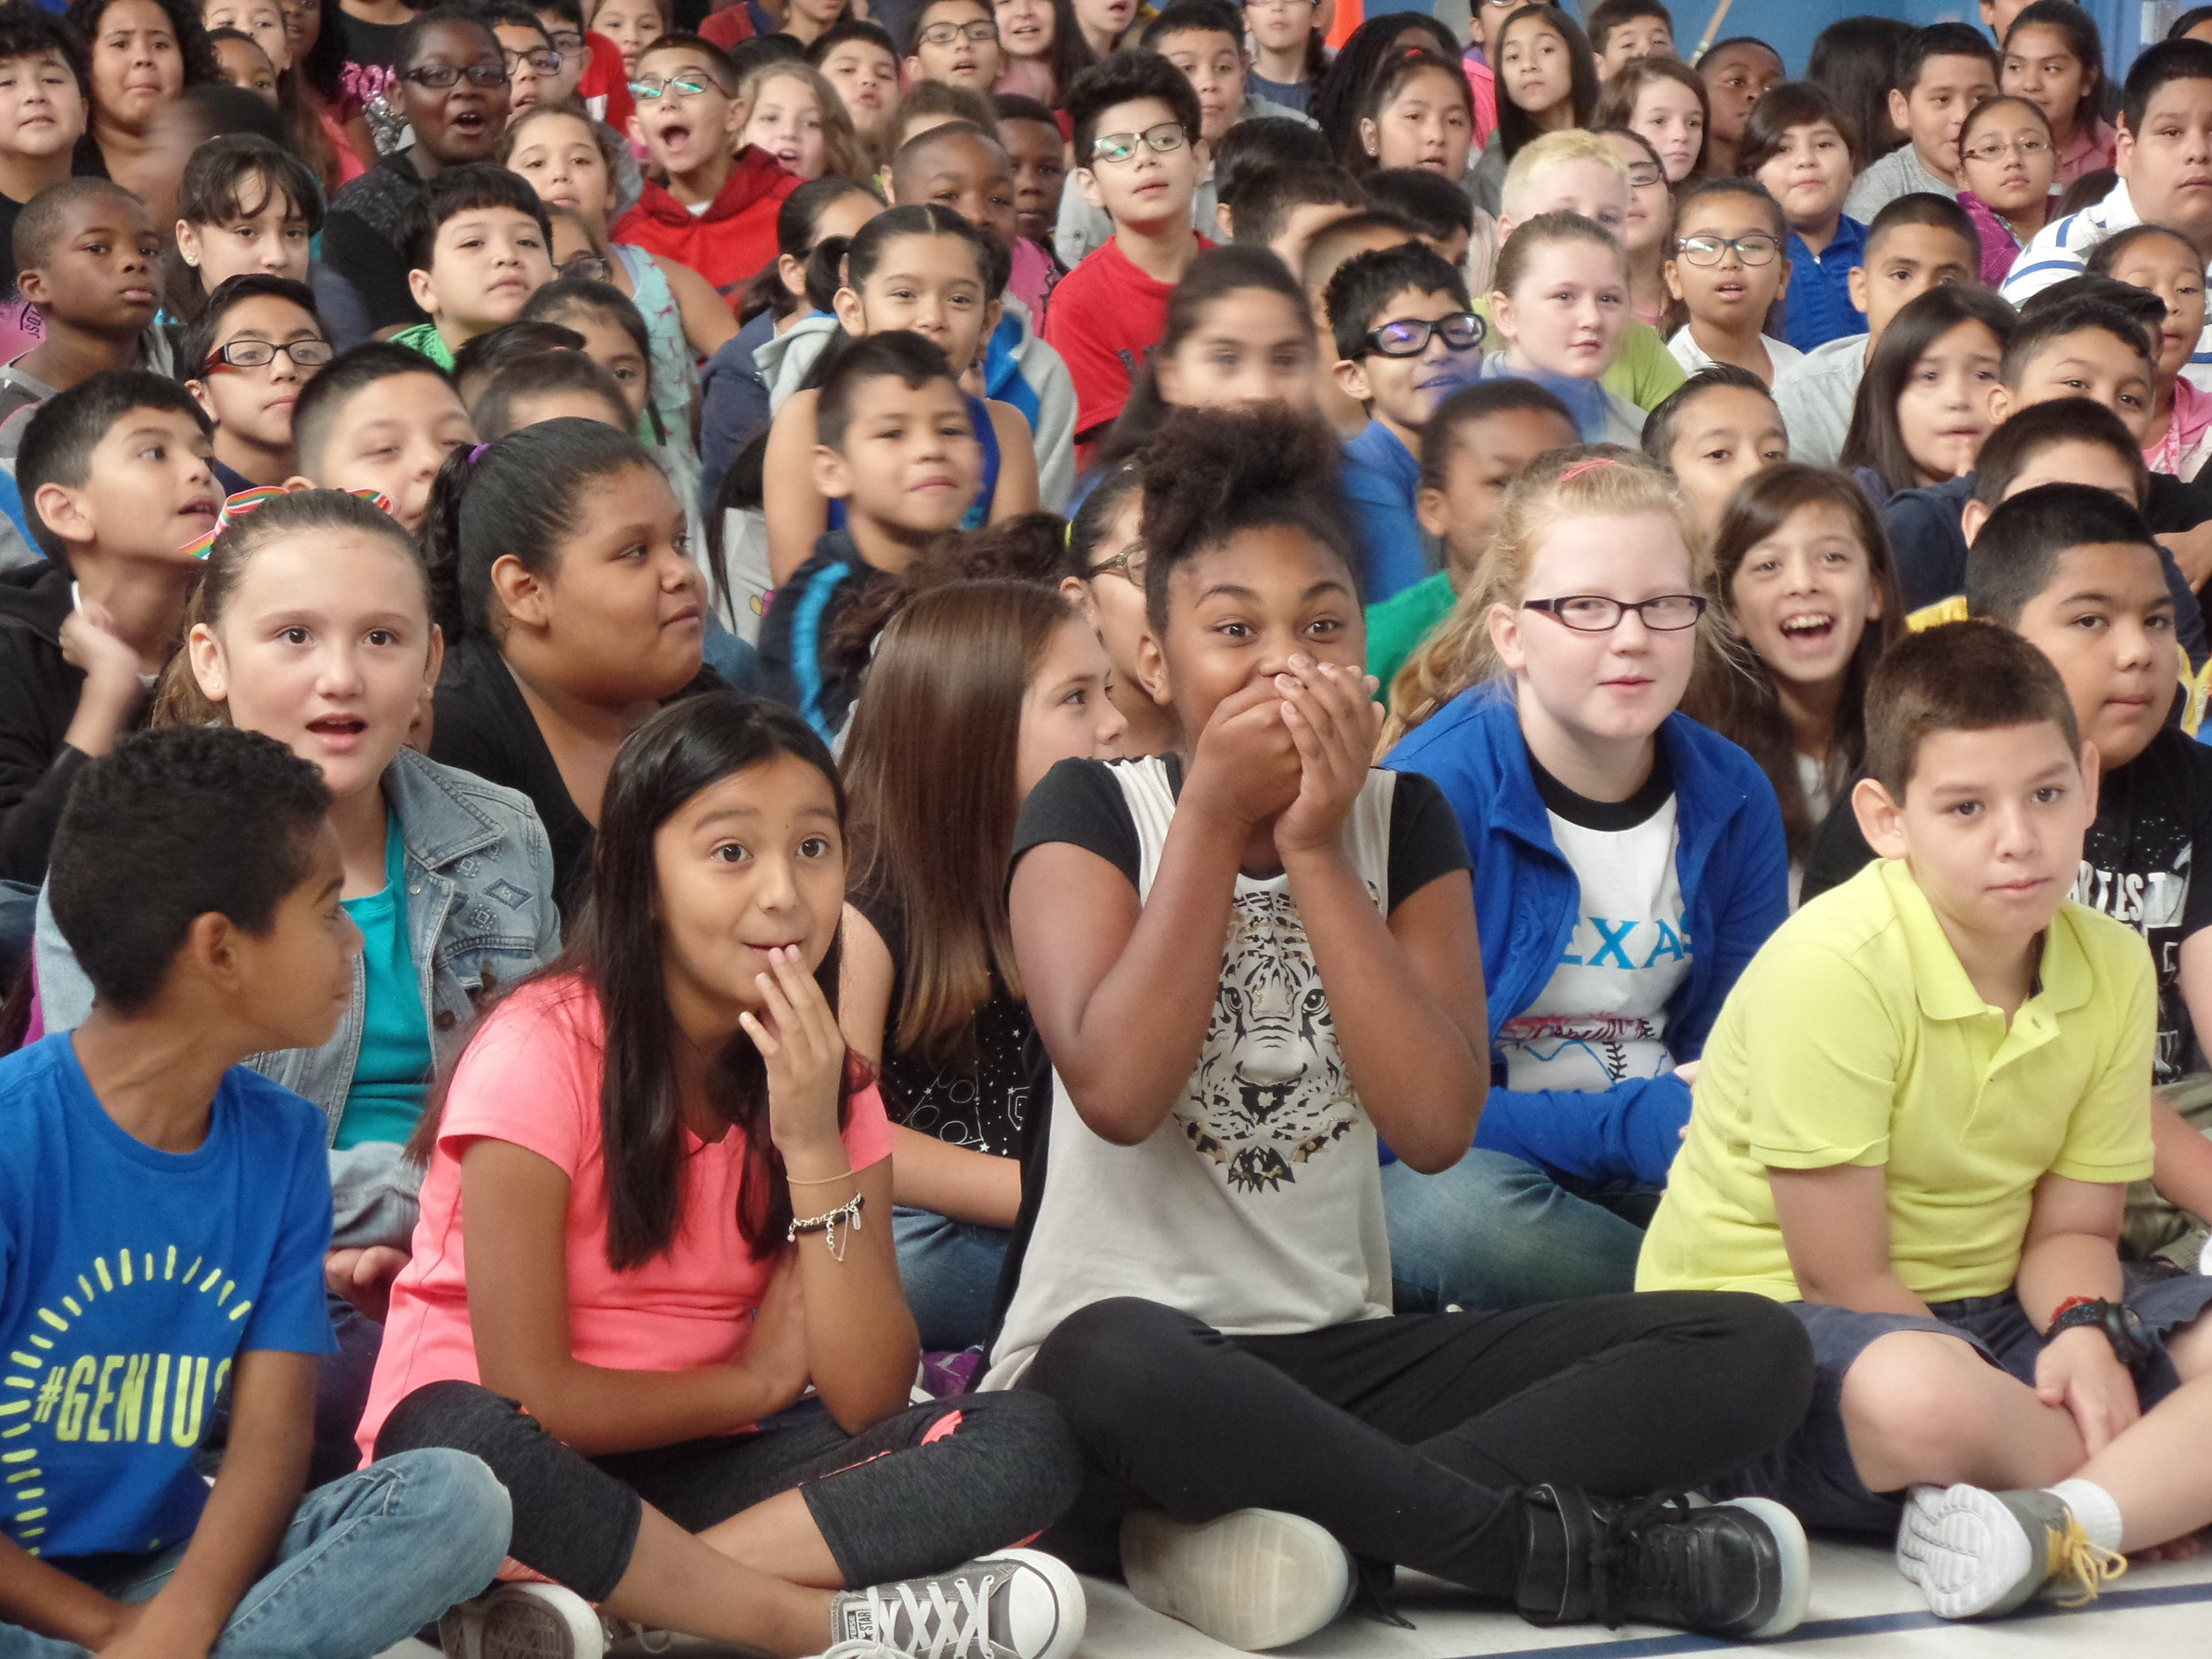 3rd - 5th graders enjoying a performance in Plano, Texas